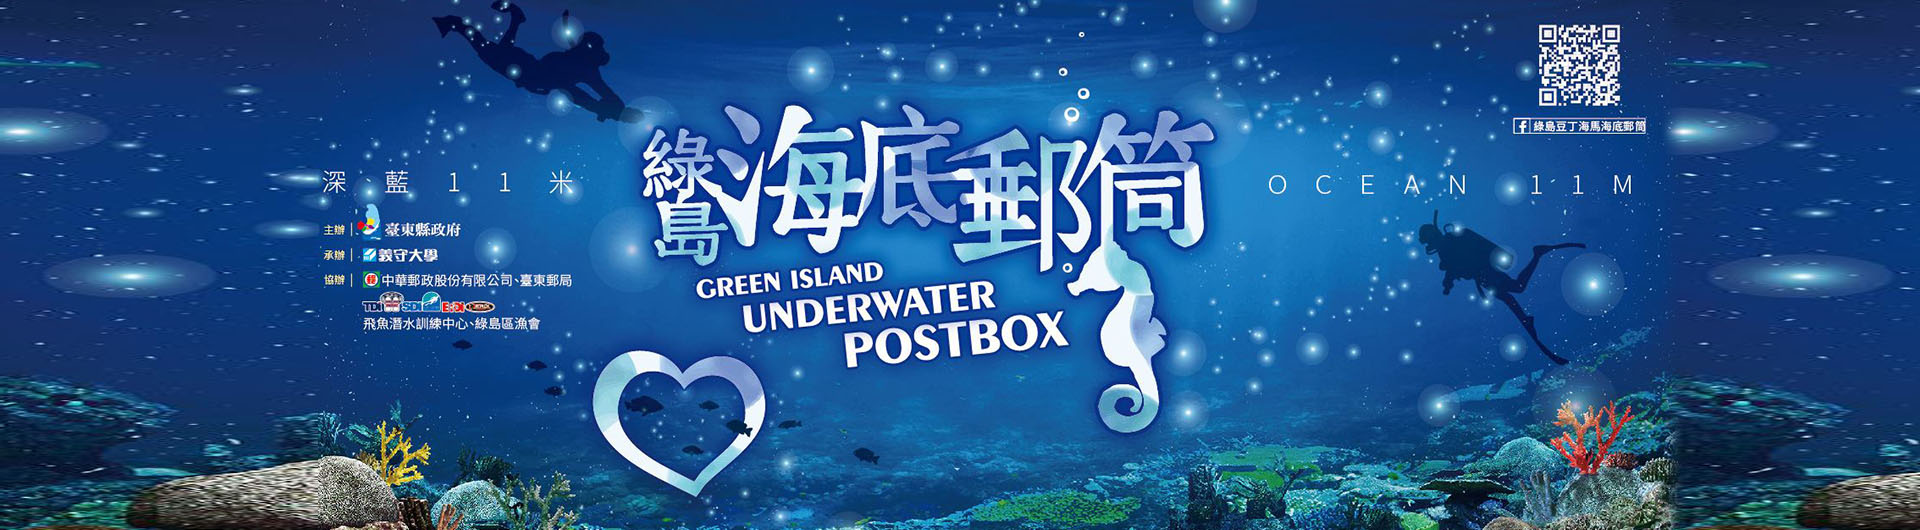 绿岛豆丁海马海底邮筒 Green Island Underwater postbox